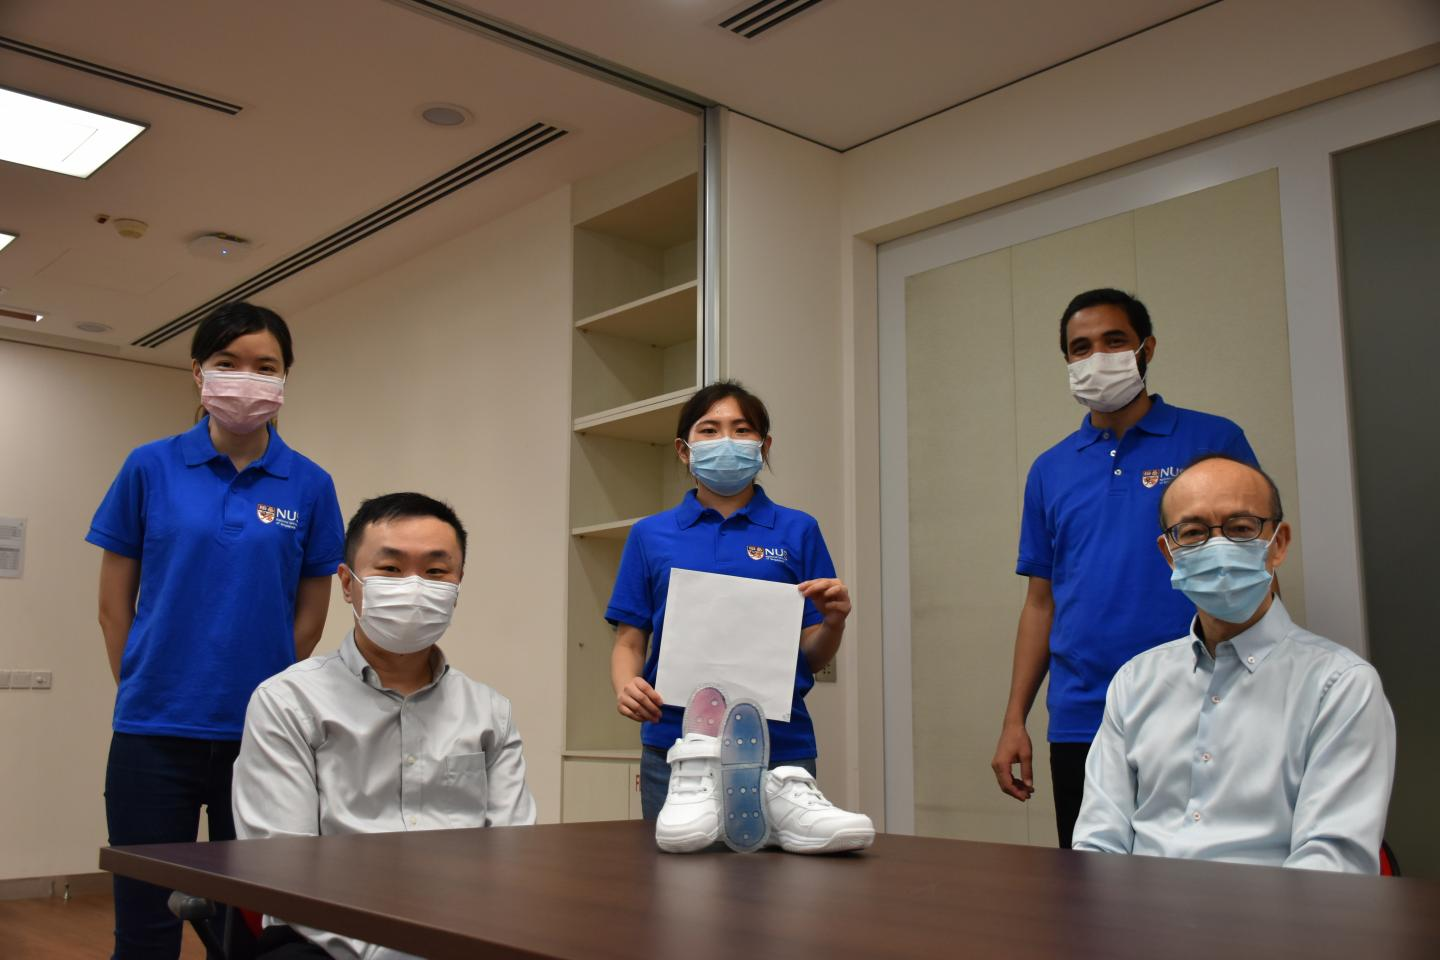 An NUS research team led by Assistant Professor Tan Swee Ching (seated, left) and Professor Ding Jun (seated right) has developed a novel film that is extremely effective in evaporating sweat from skin. Image via NUS.